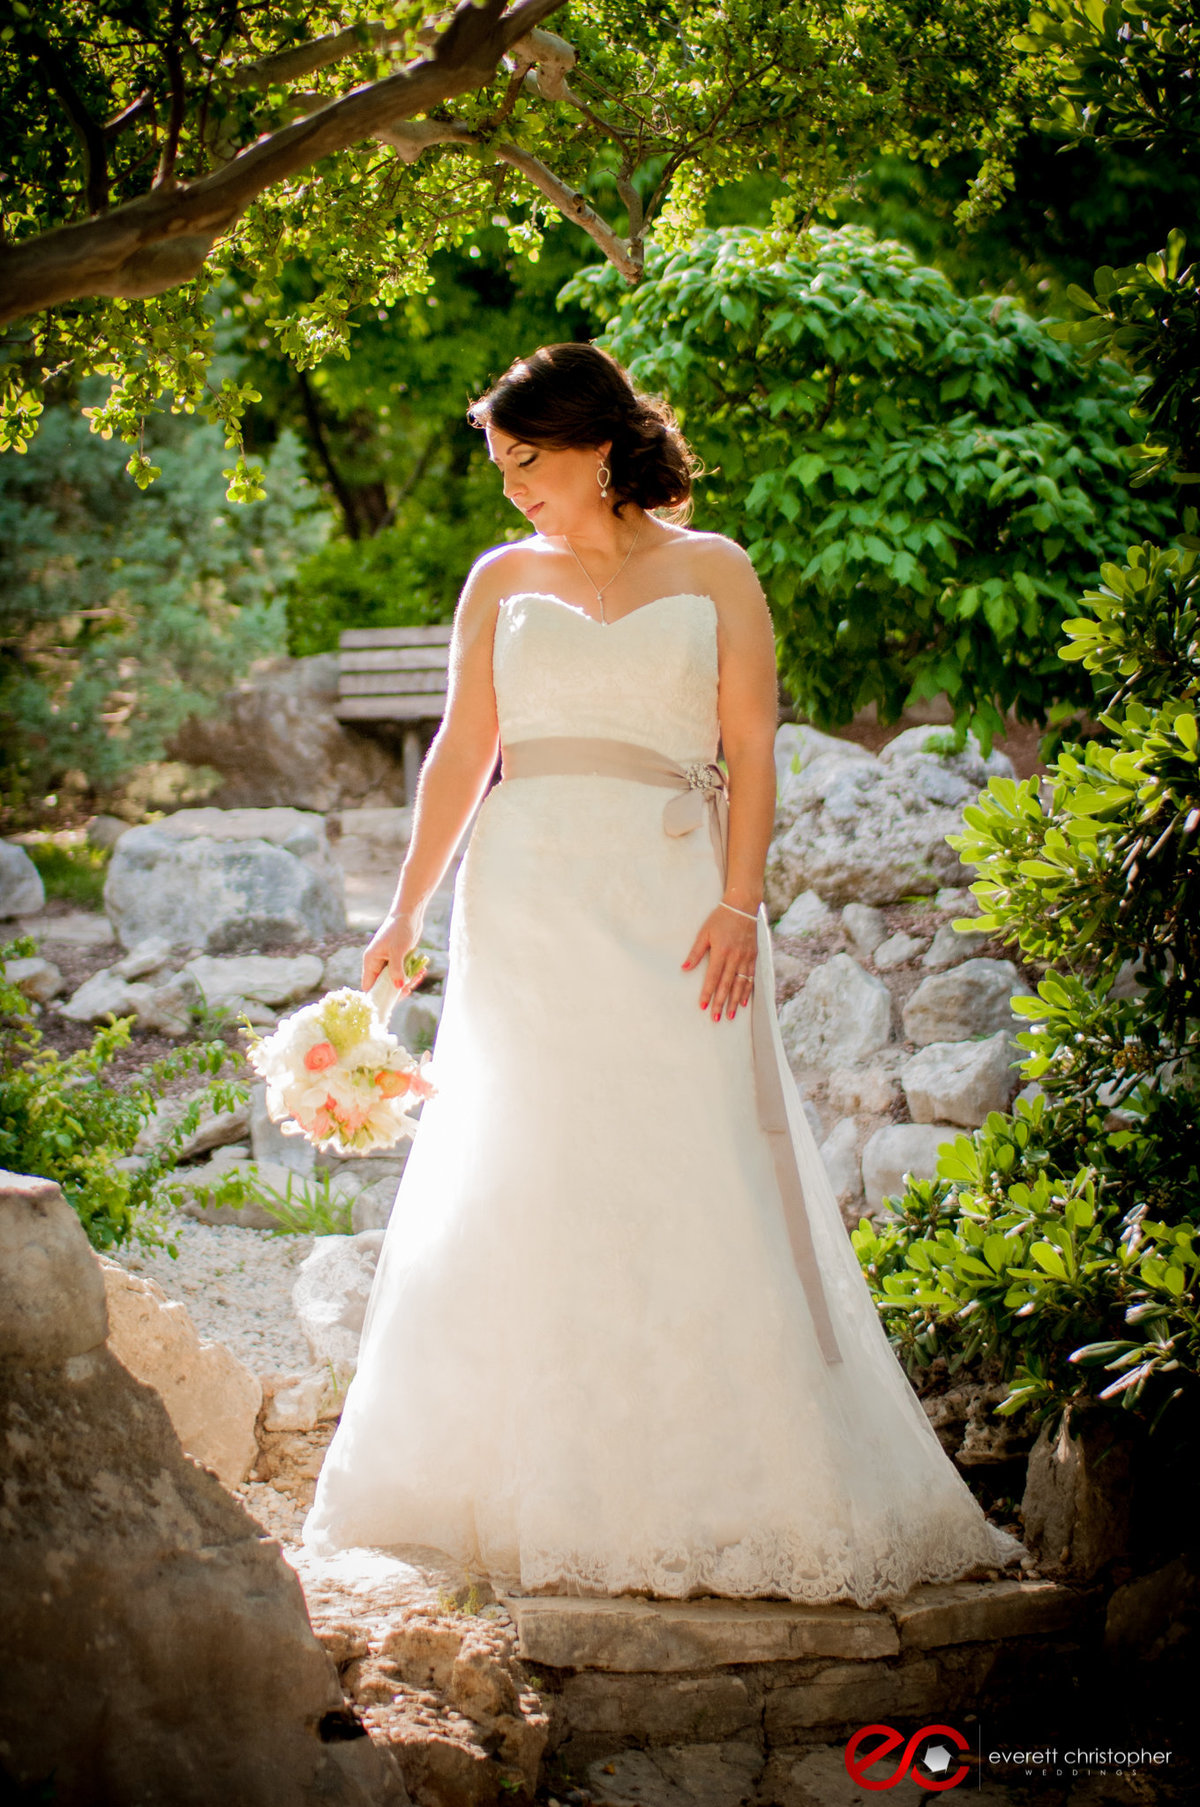 042714andrea_bridals_botanical0044